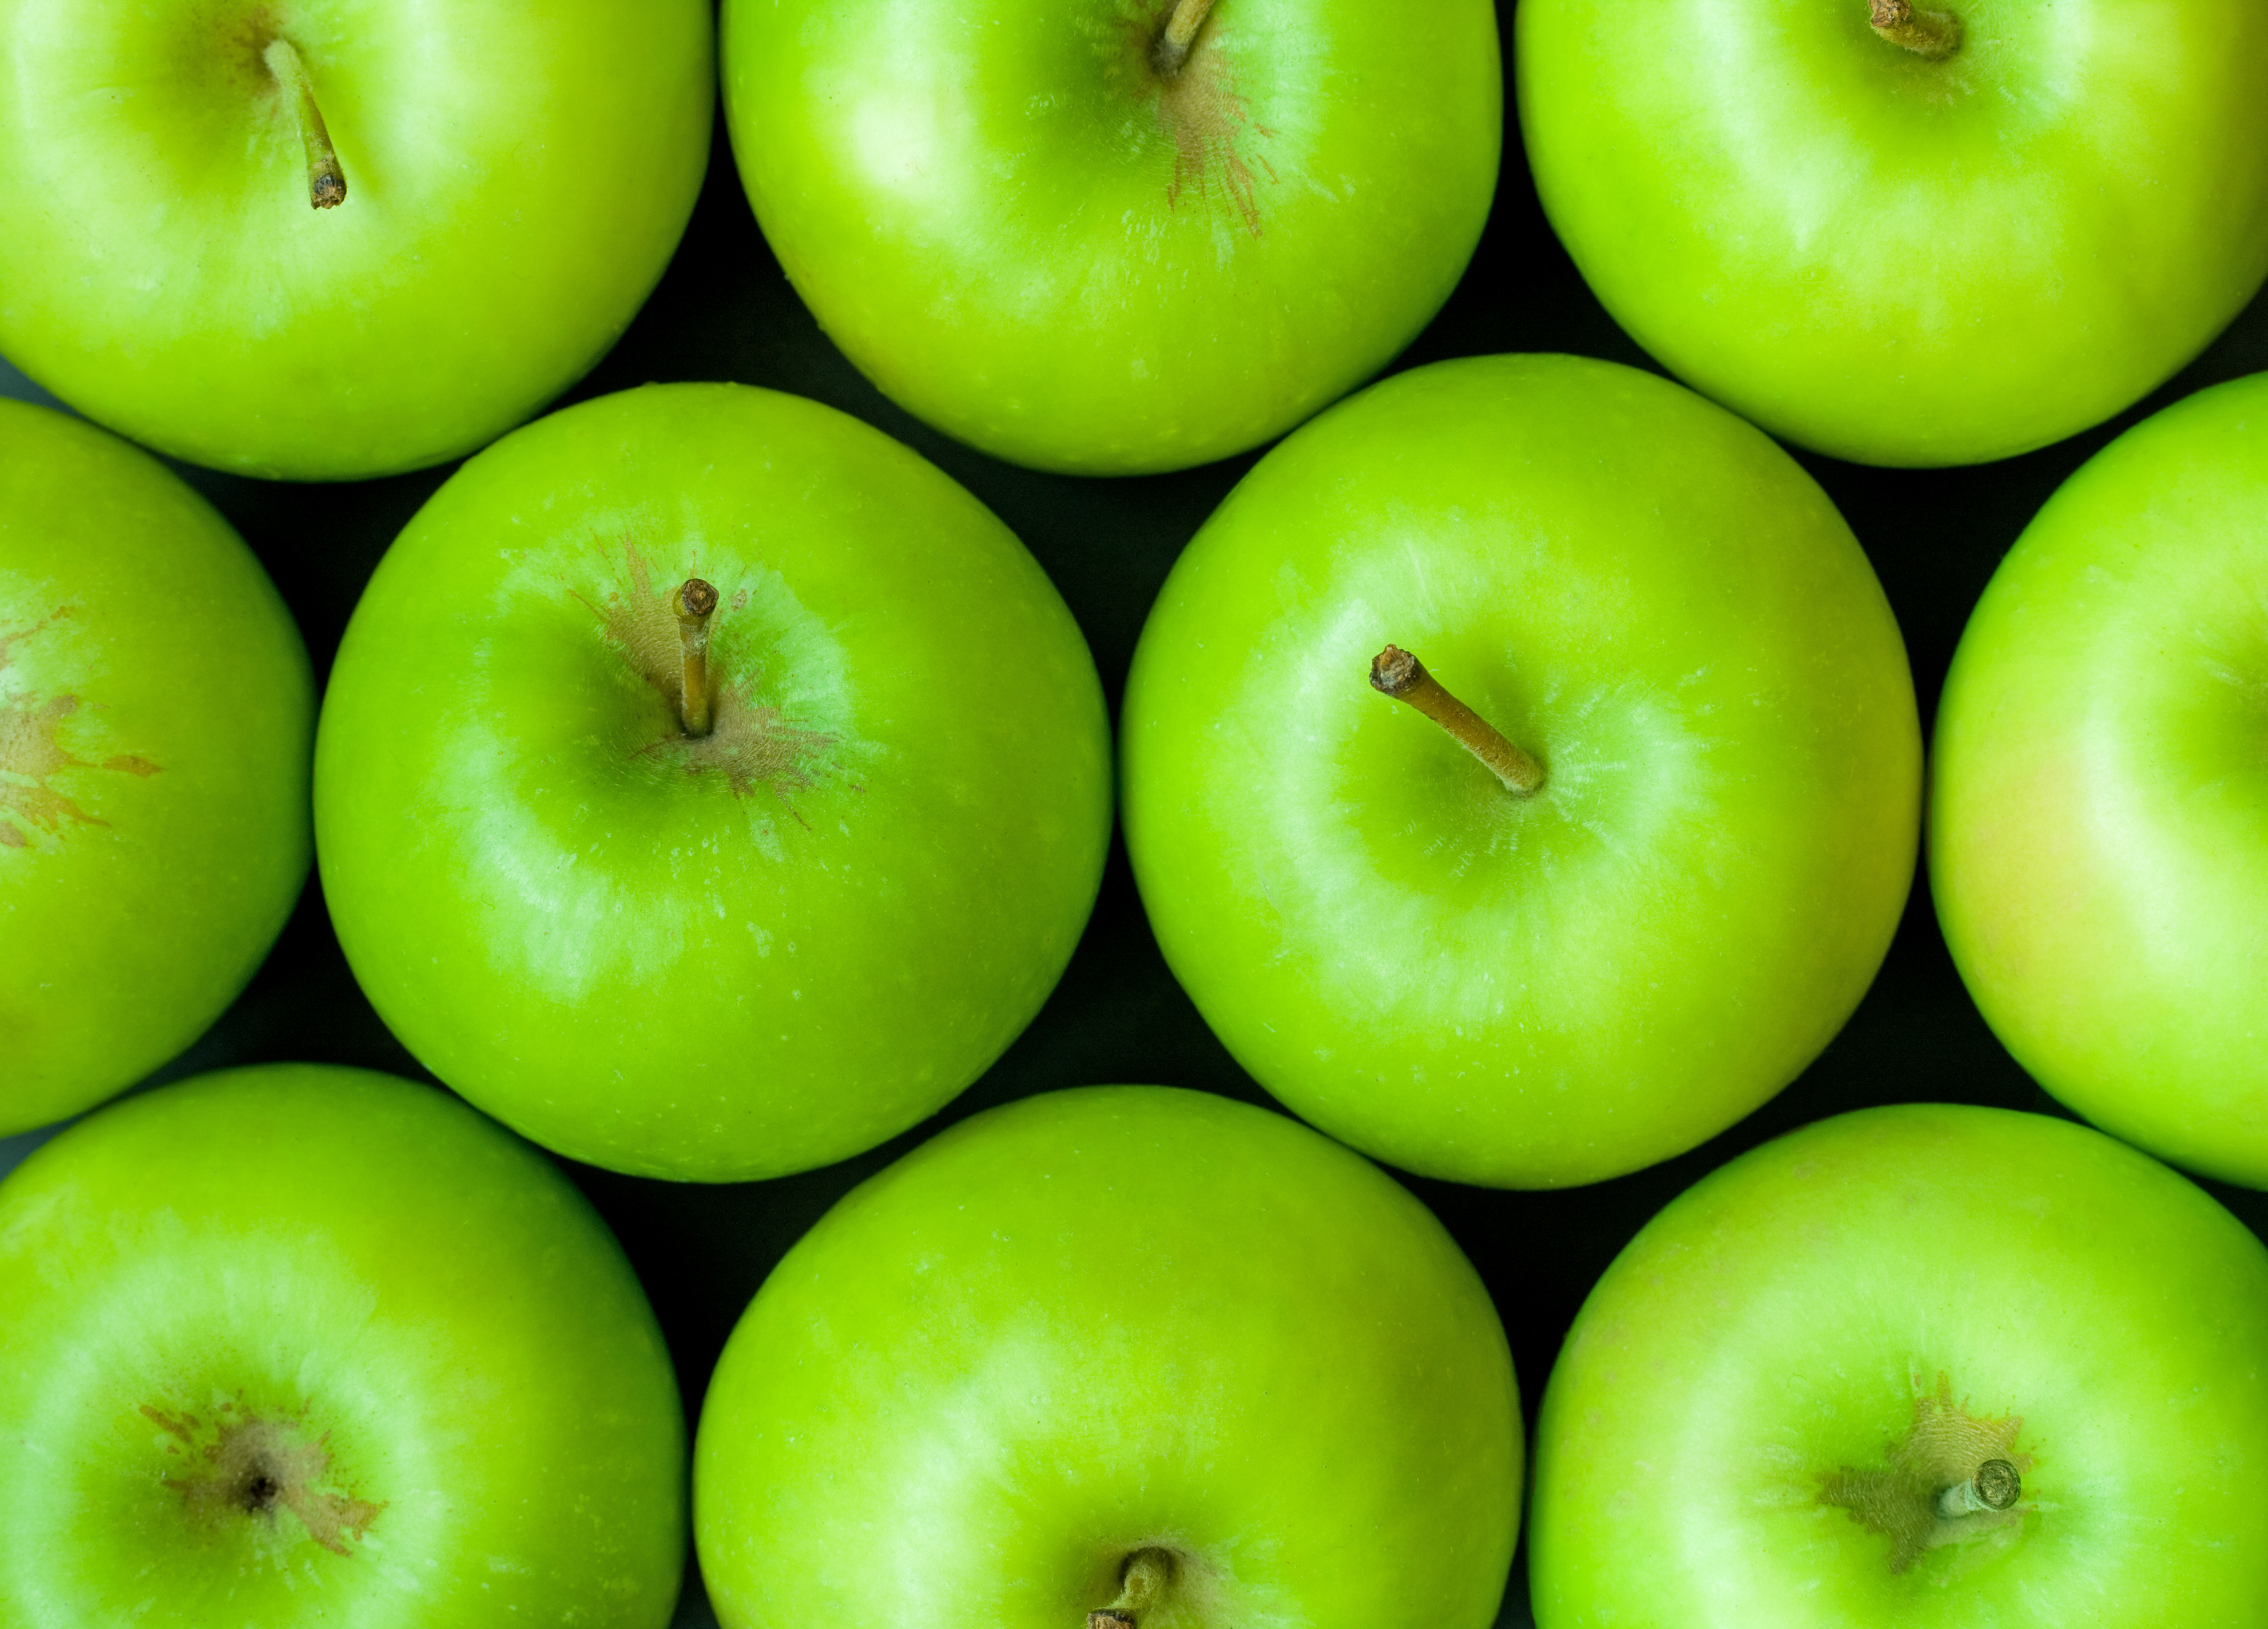 apples hd wallpapers